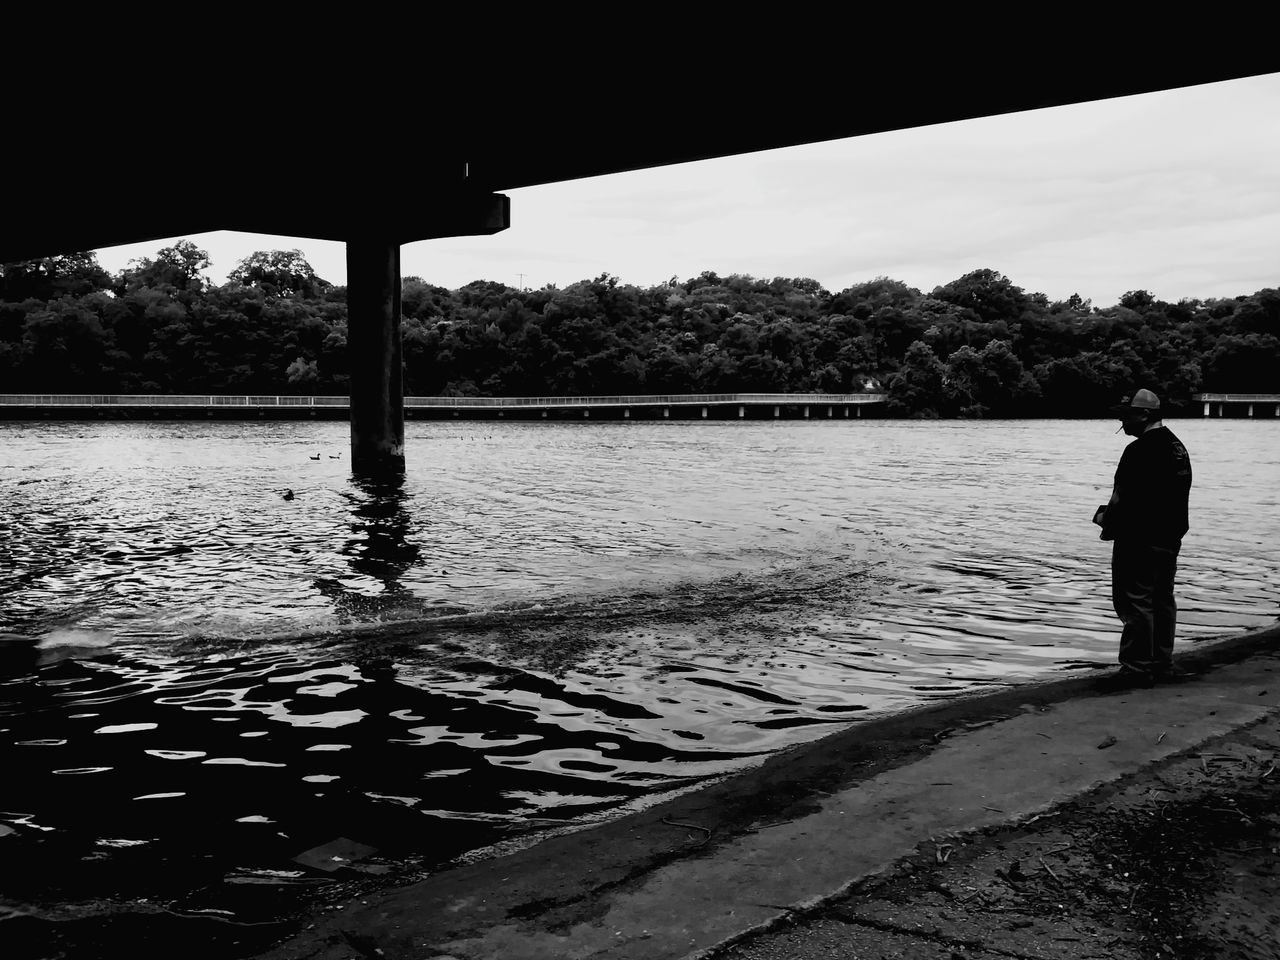 Festival Beach The Street Photographer - 2017 EyeEm Awards Black And White Photography Outdoors City Austin,tx Under A Bridge RC A Man And His Toys Ladybird Lake Rc Boat Underpass Hobbies One Man Only Festival Beach